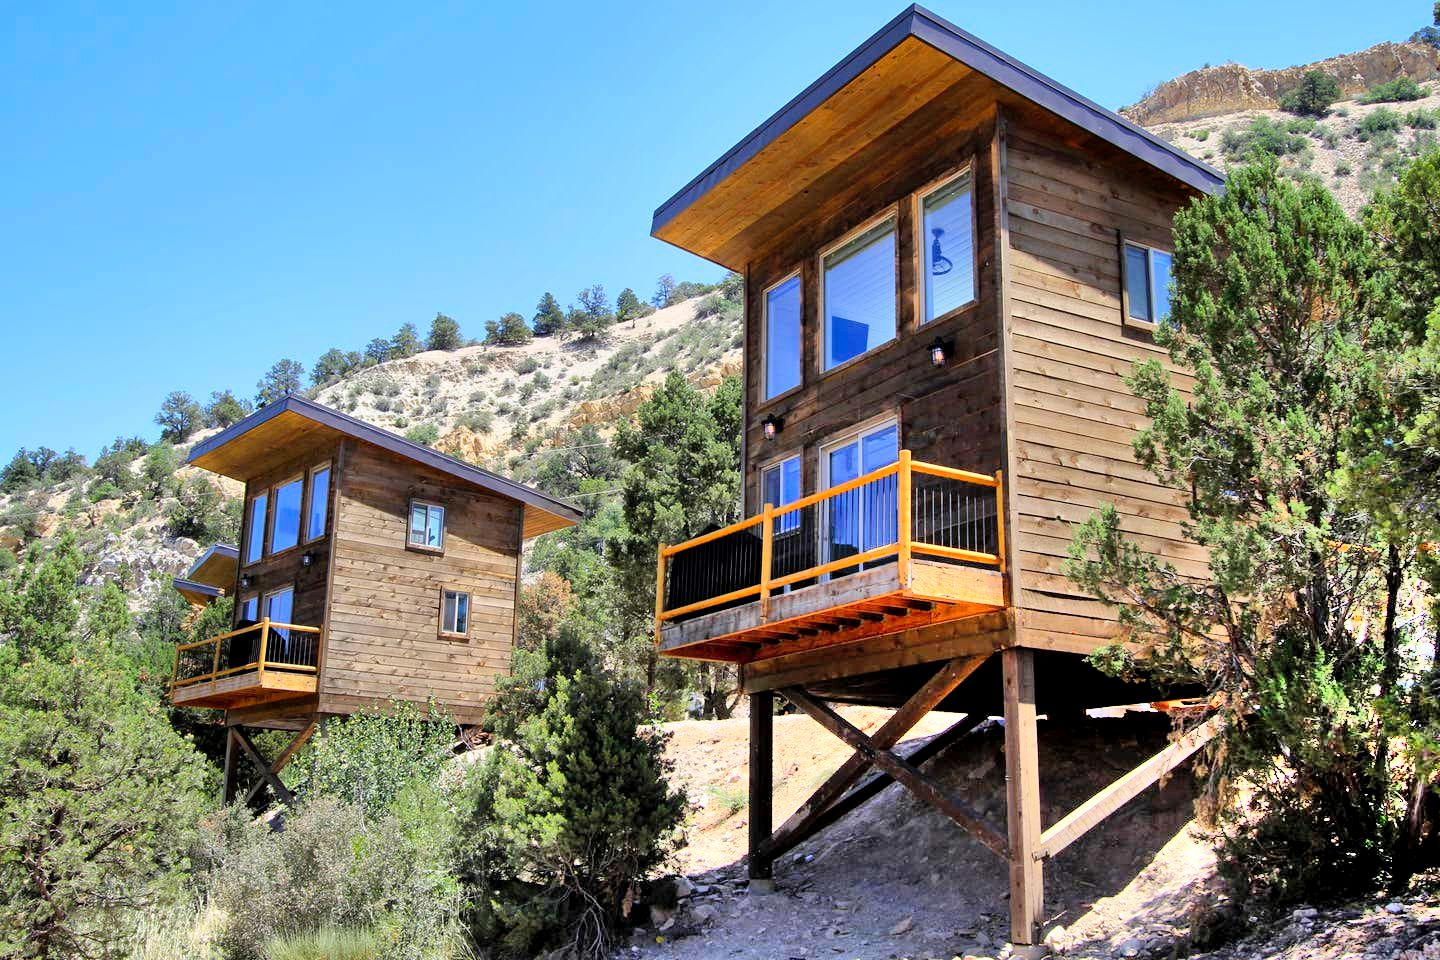 Elevated cabin rental in Orderville, Utah